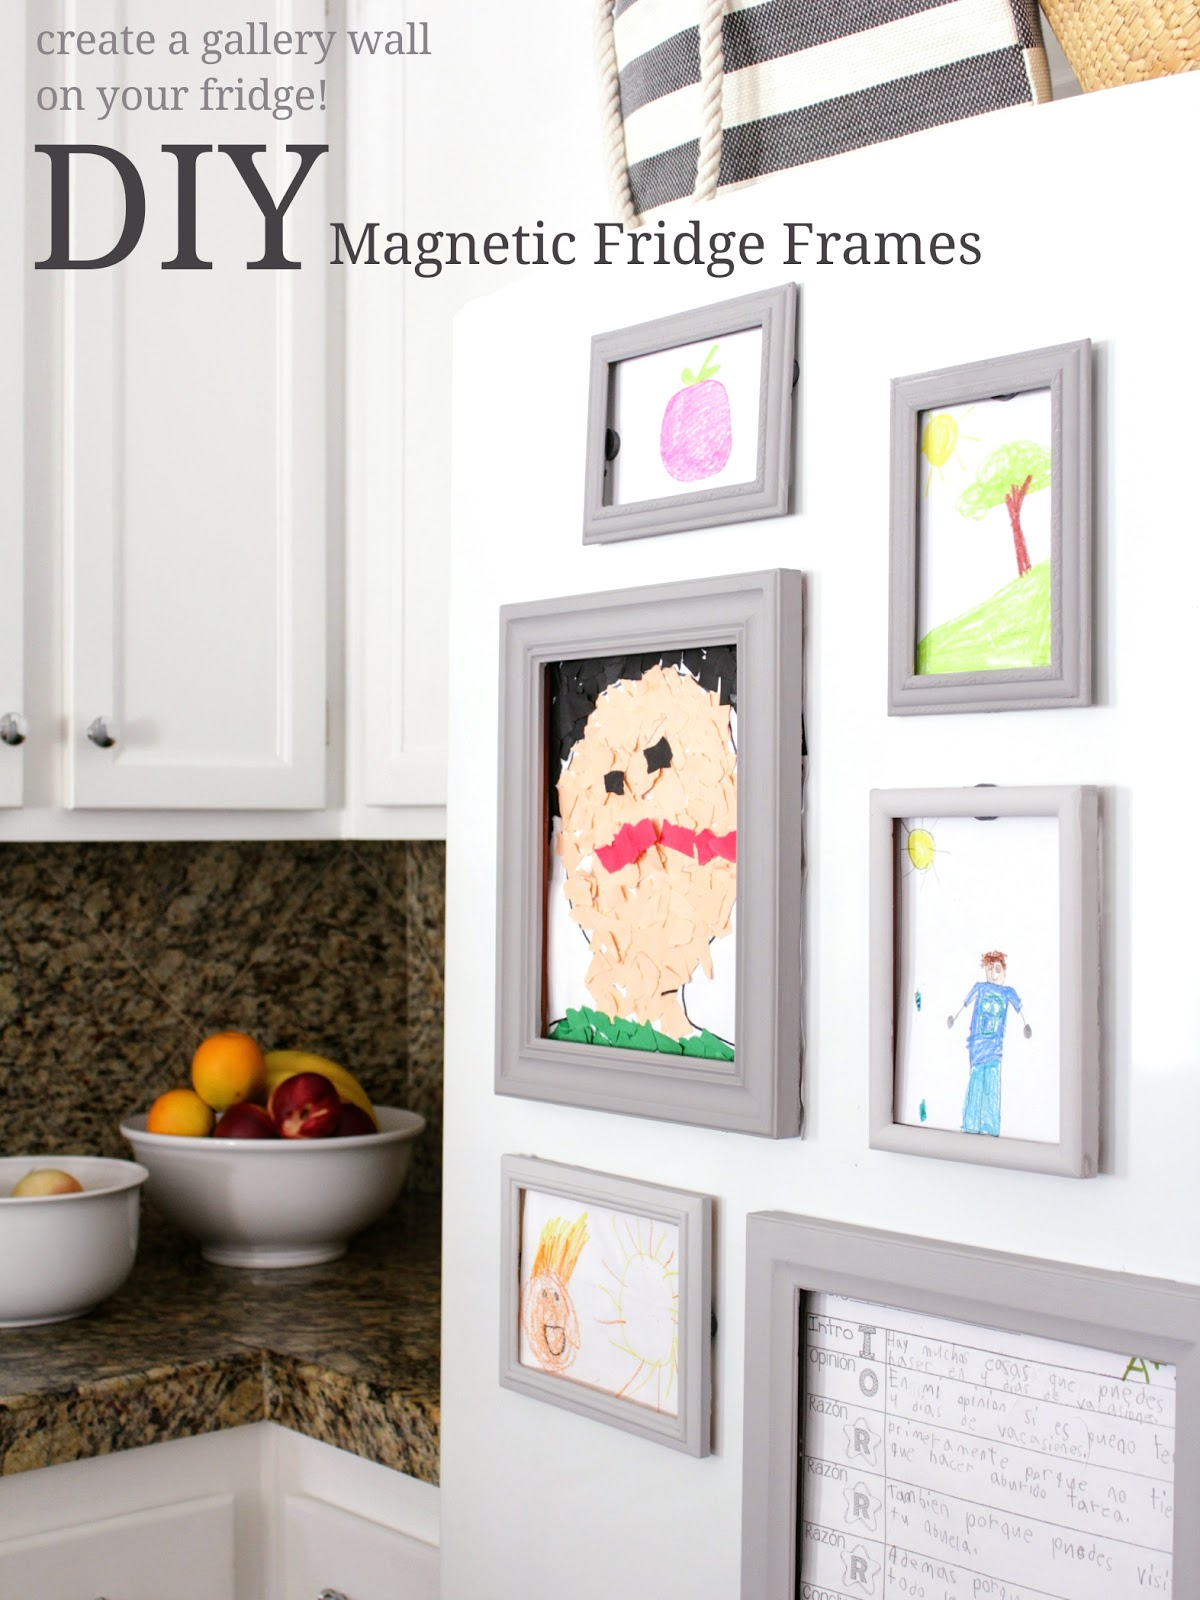 Oscar Bravo Home: DIY Magnetic Fridge Frames